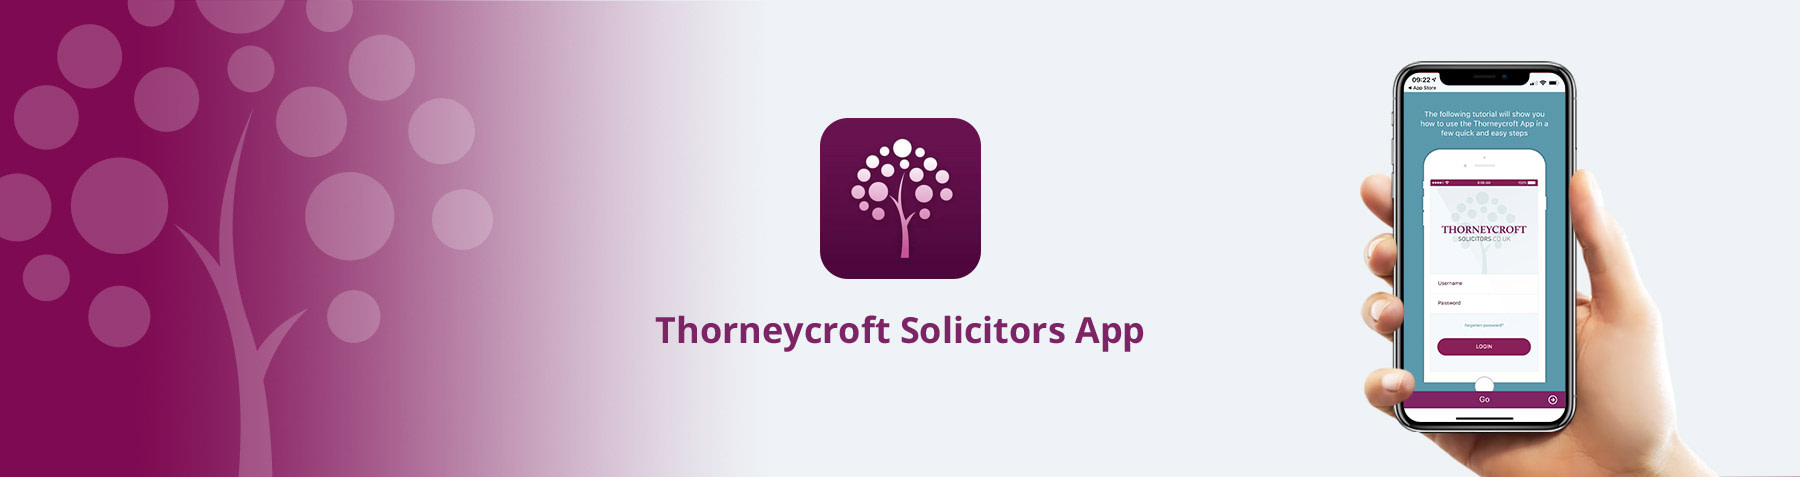 Thorneycroft Solicitors App